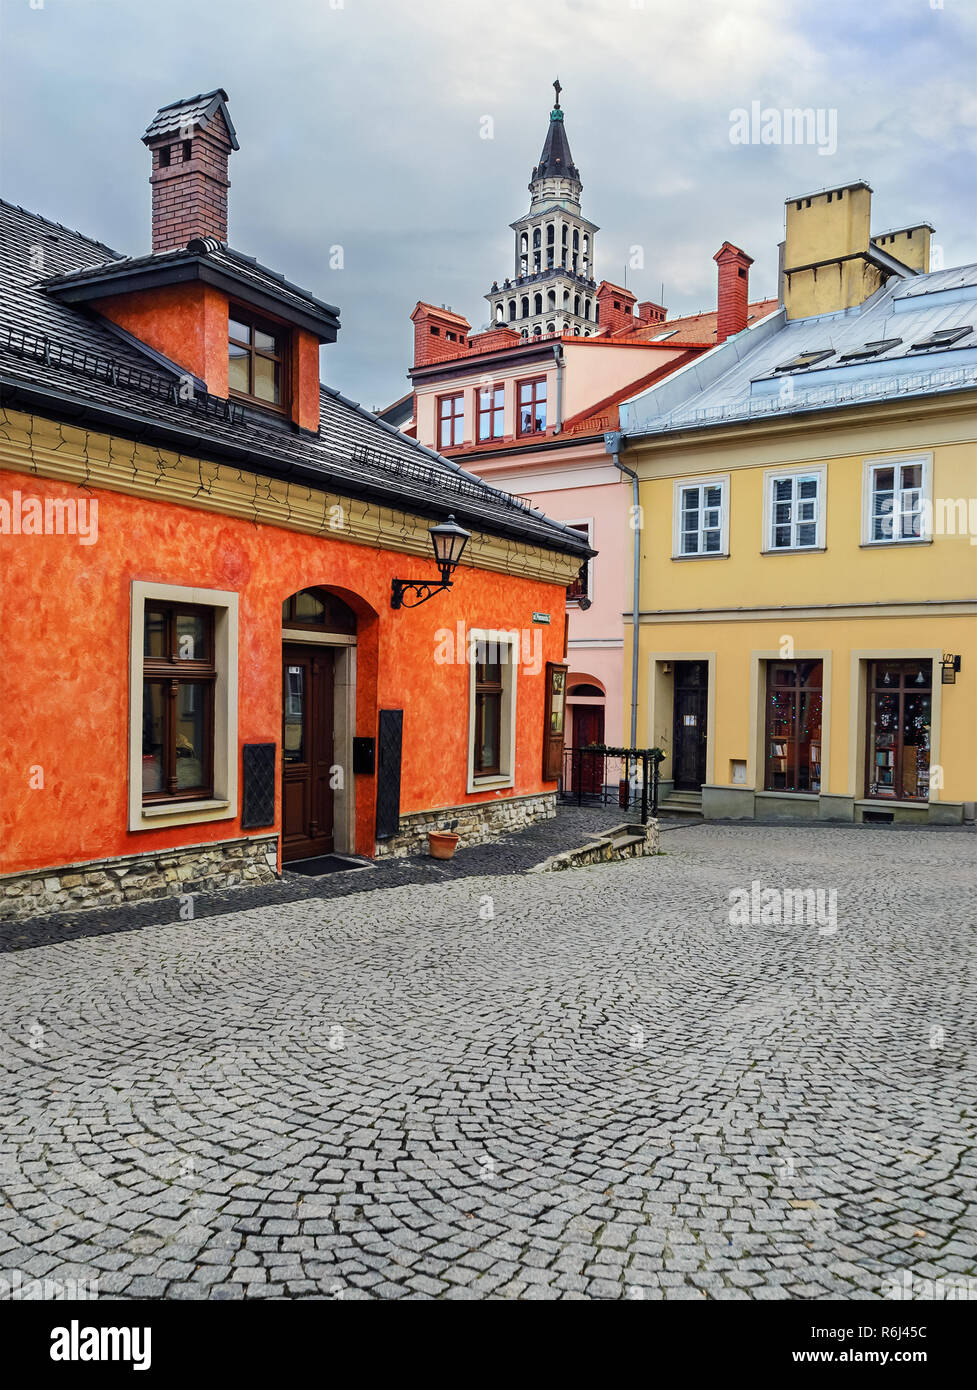 View of the historical part of Bielsko-Biala, Poland. - Stock Image